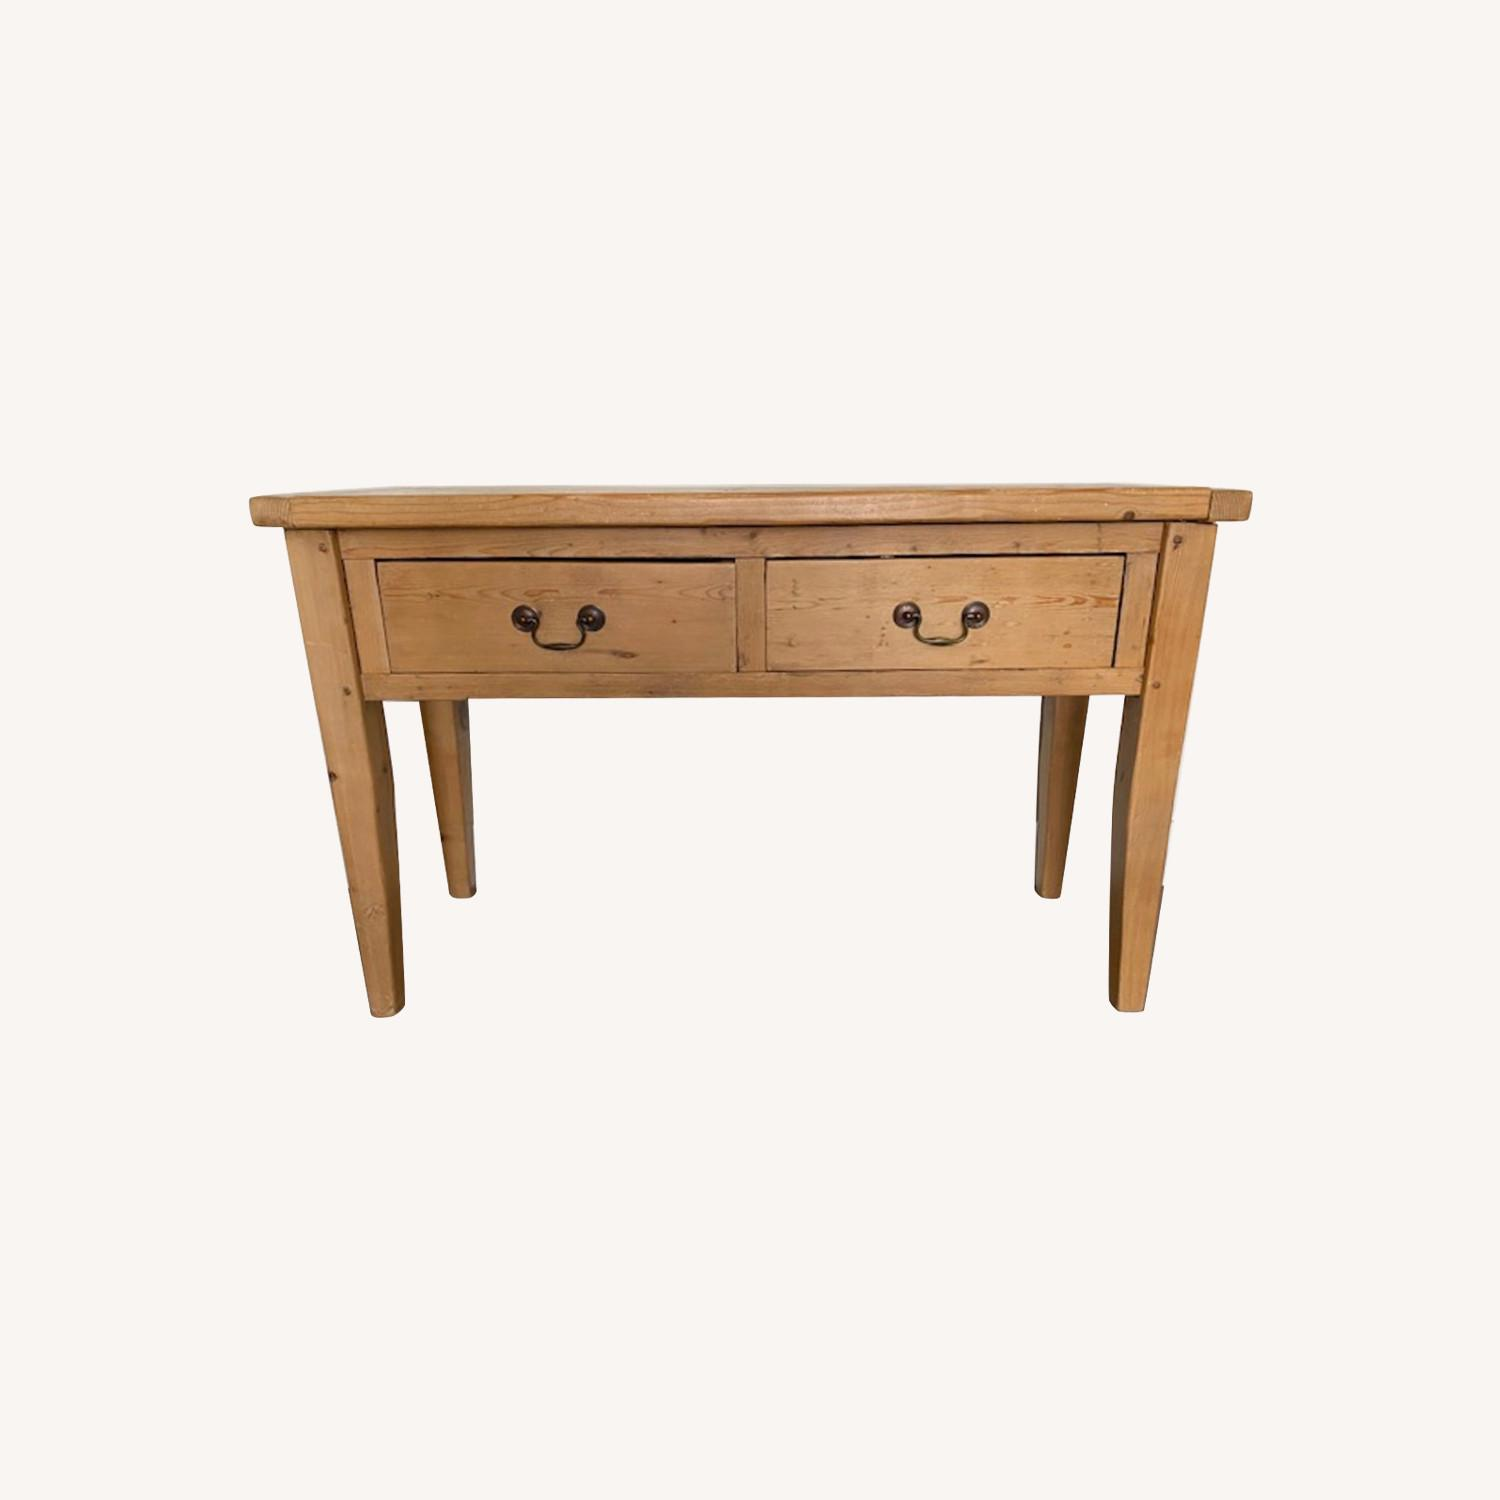 Vintage Pine Console Table with Drawers - image-0